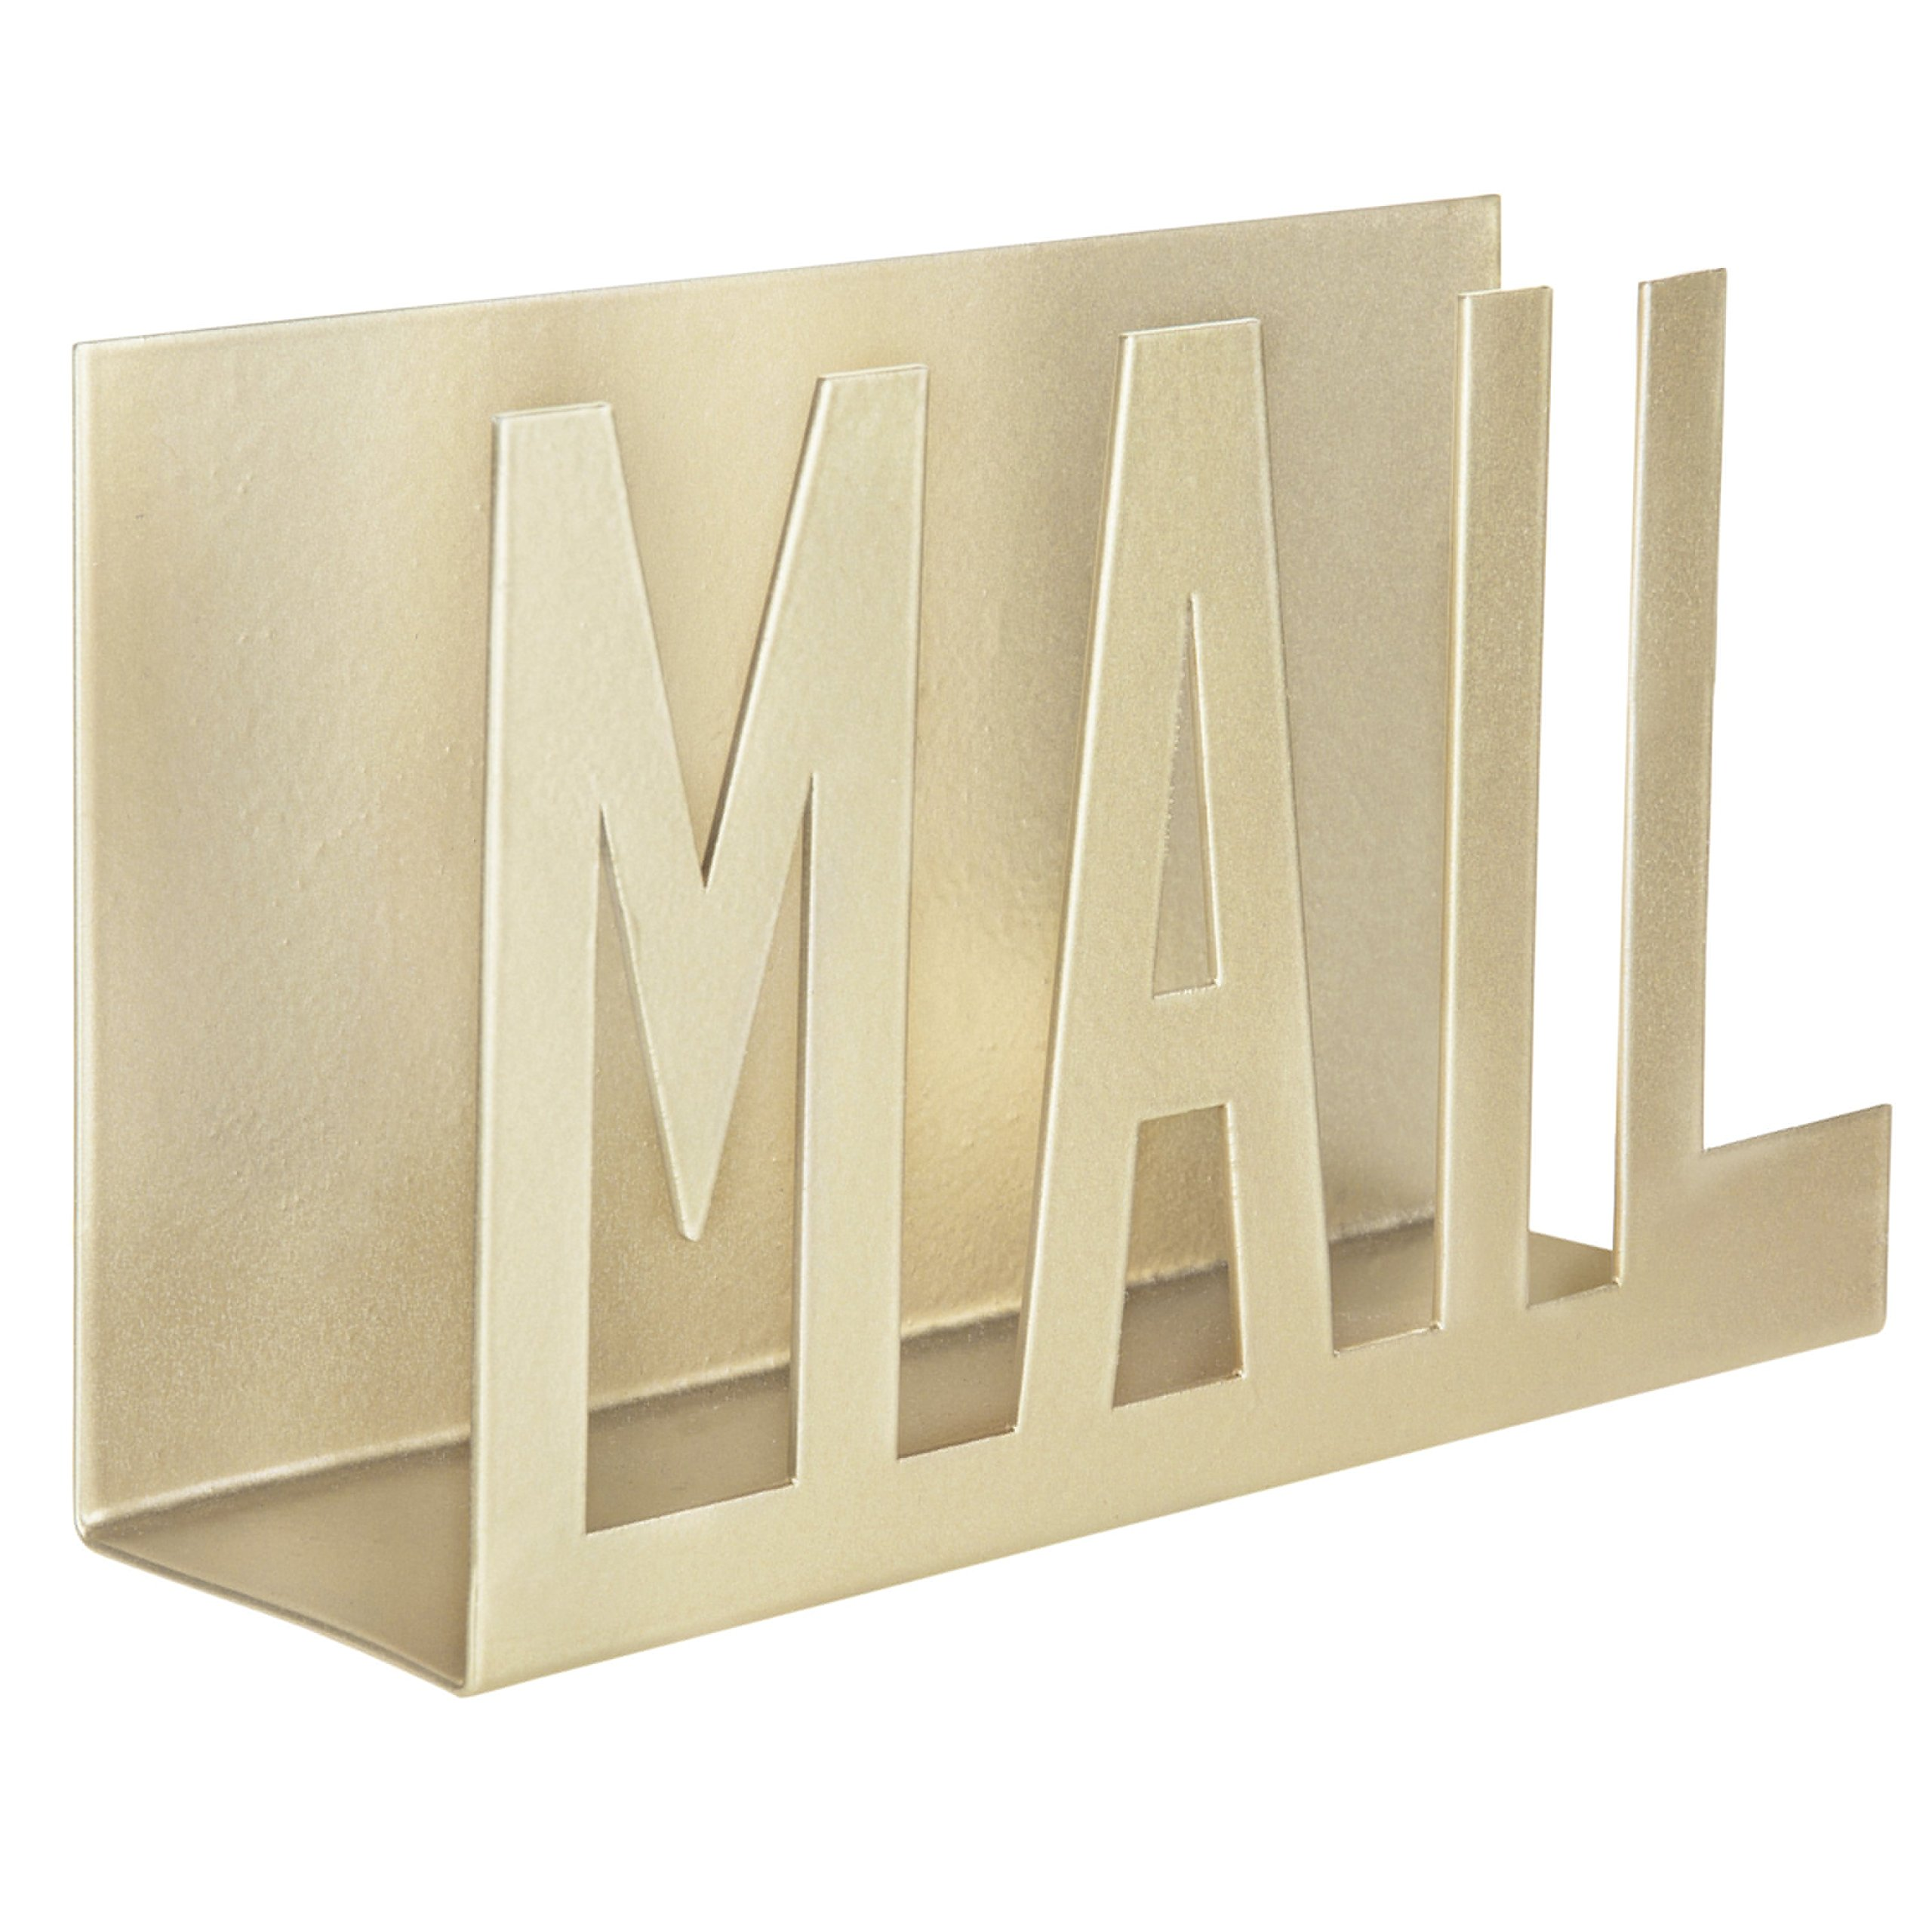 MyGift Modern Brass-Tone Metal Cutout-Design Mail Holder by MyGift